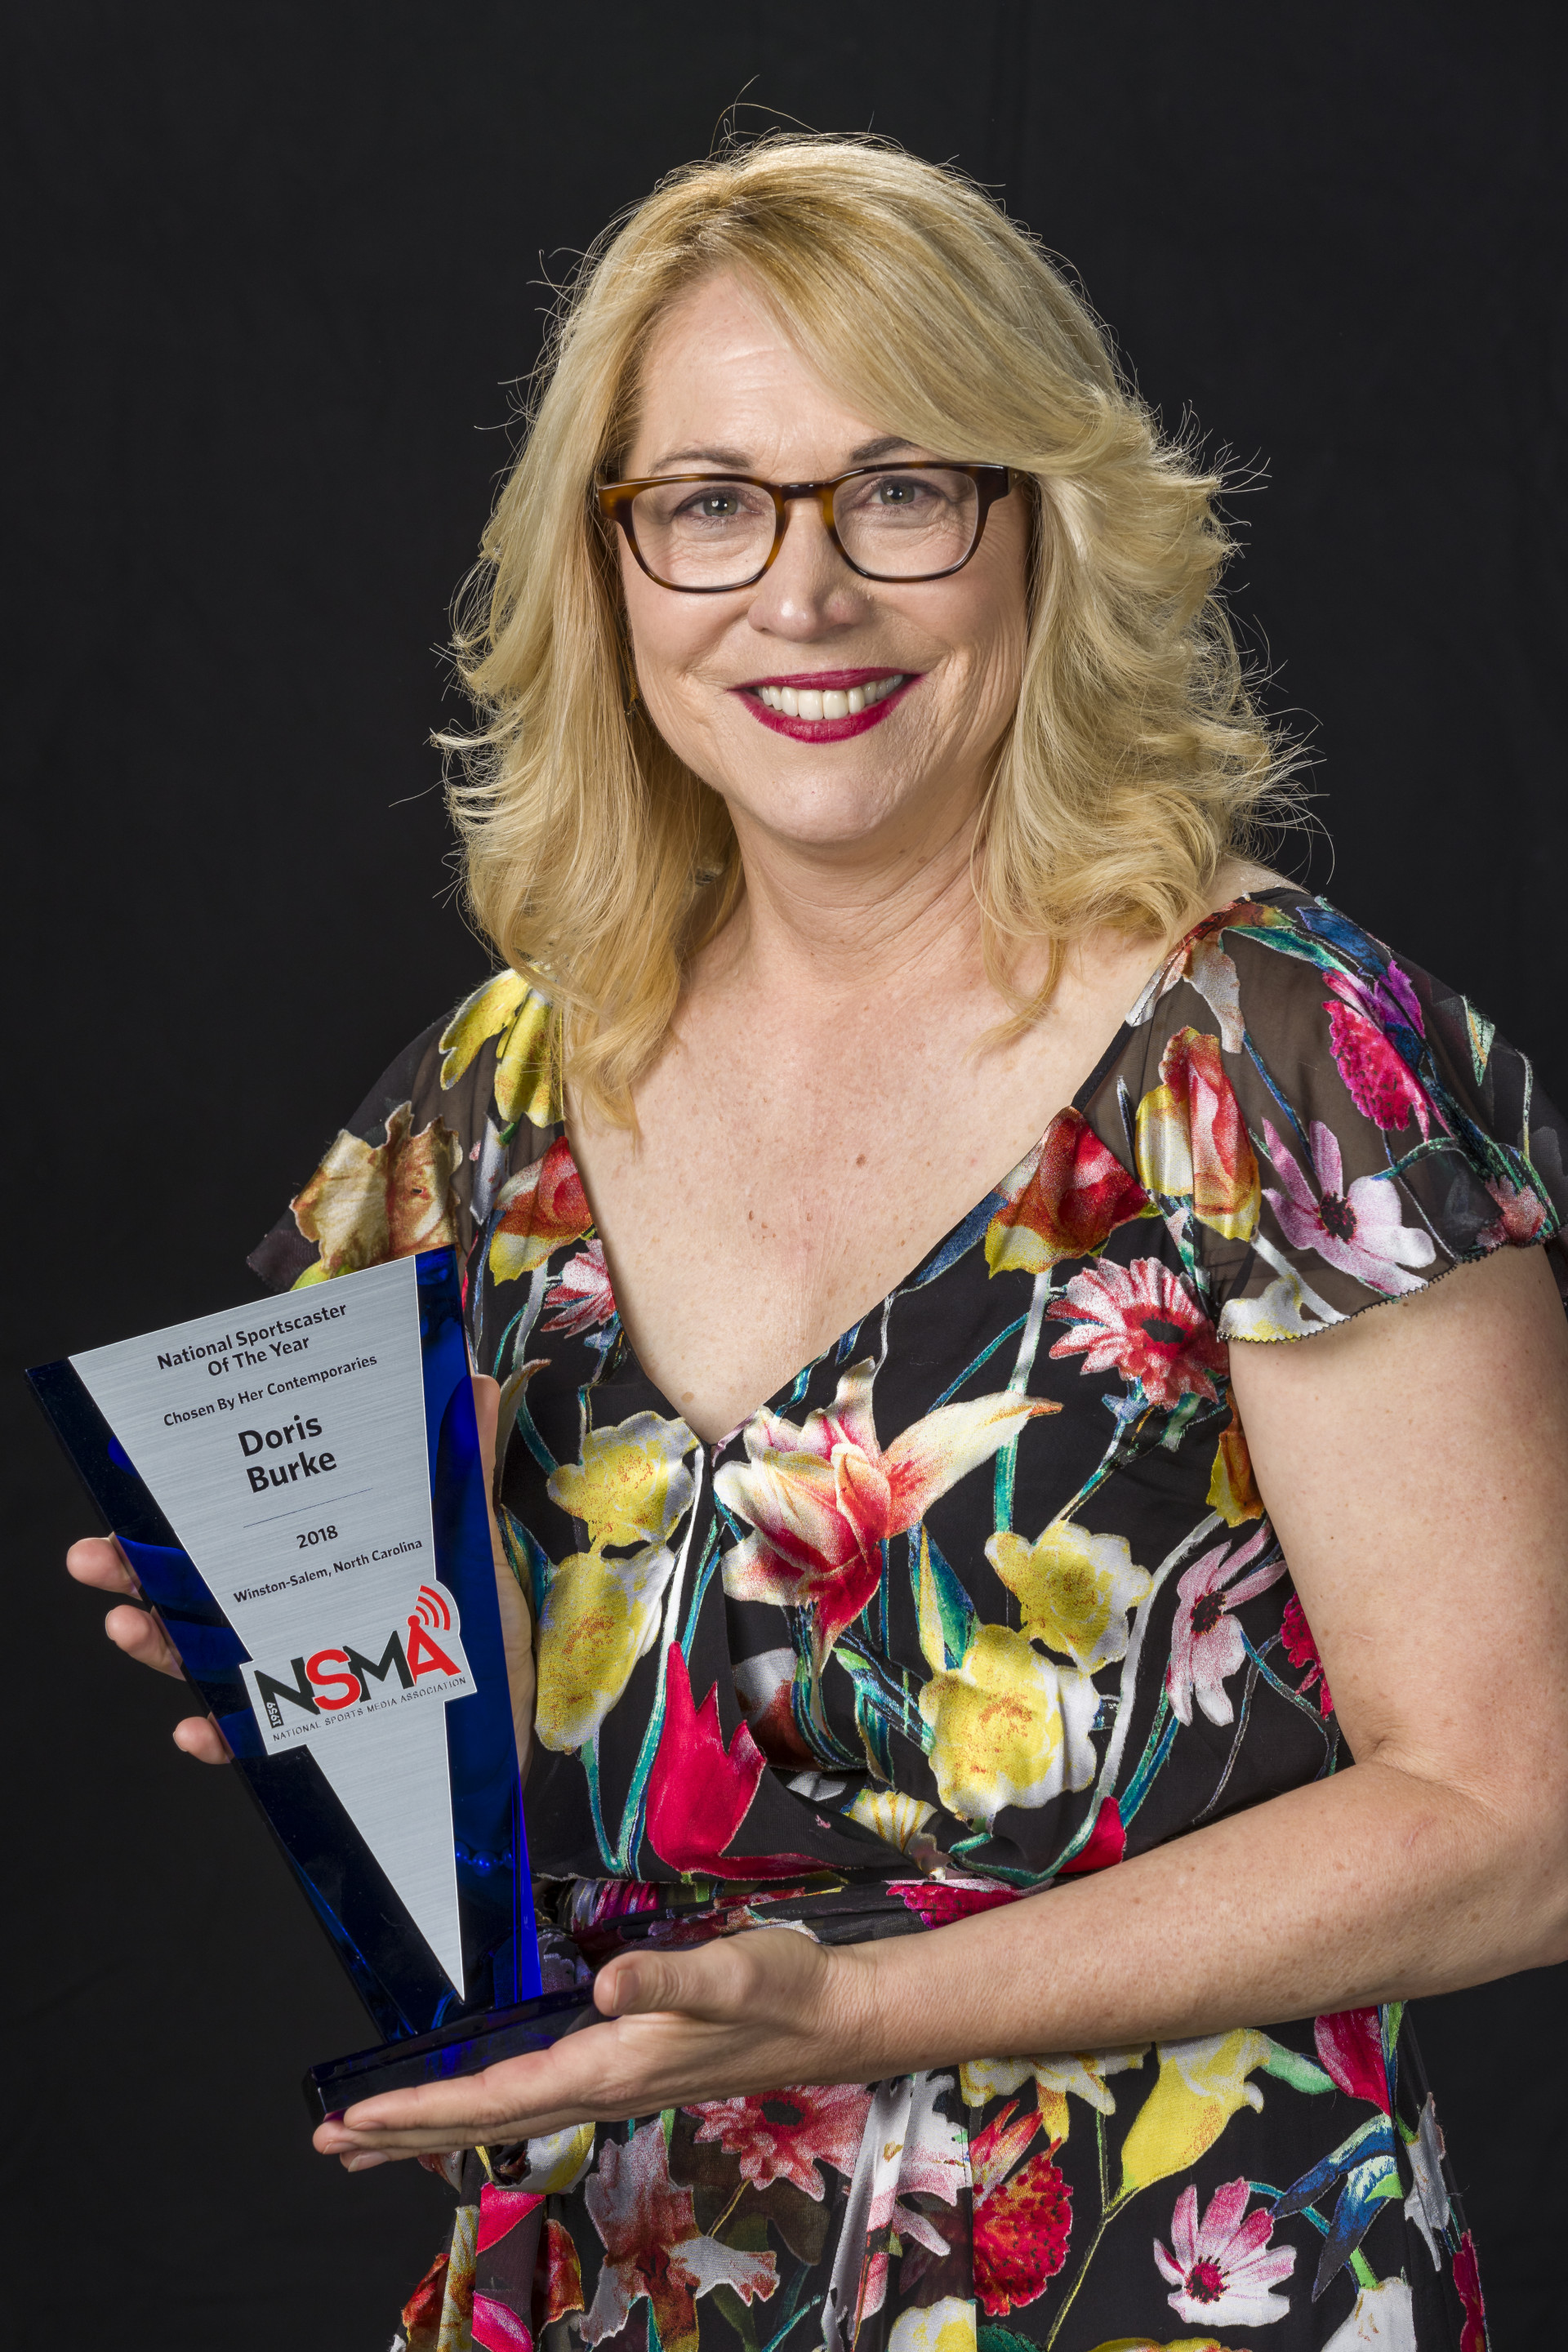 2018 NSMA National Sportscaster of the Year Doris Burke (Bob Leverone photo)